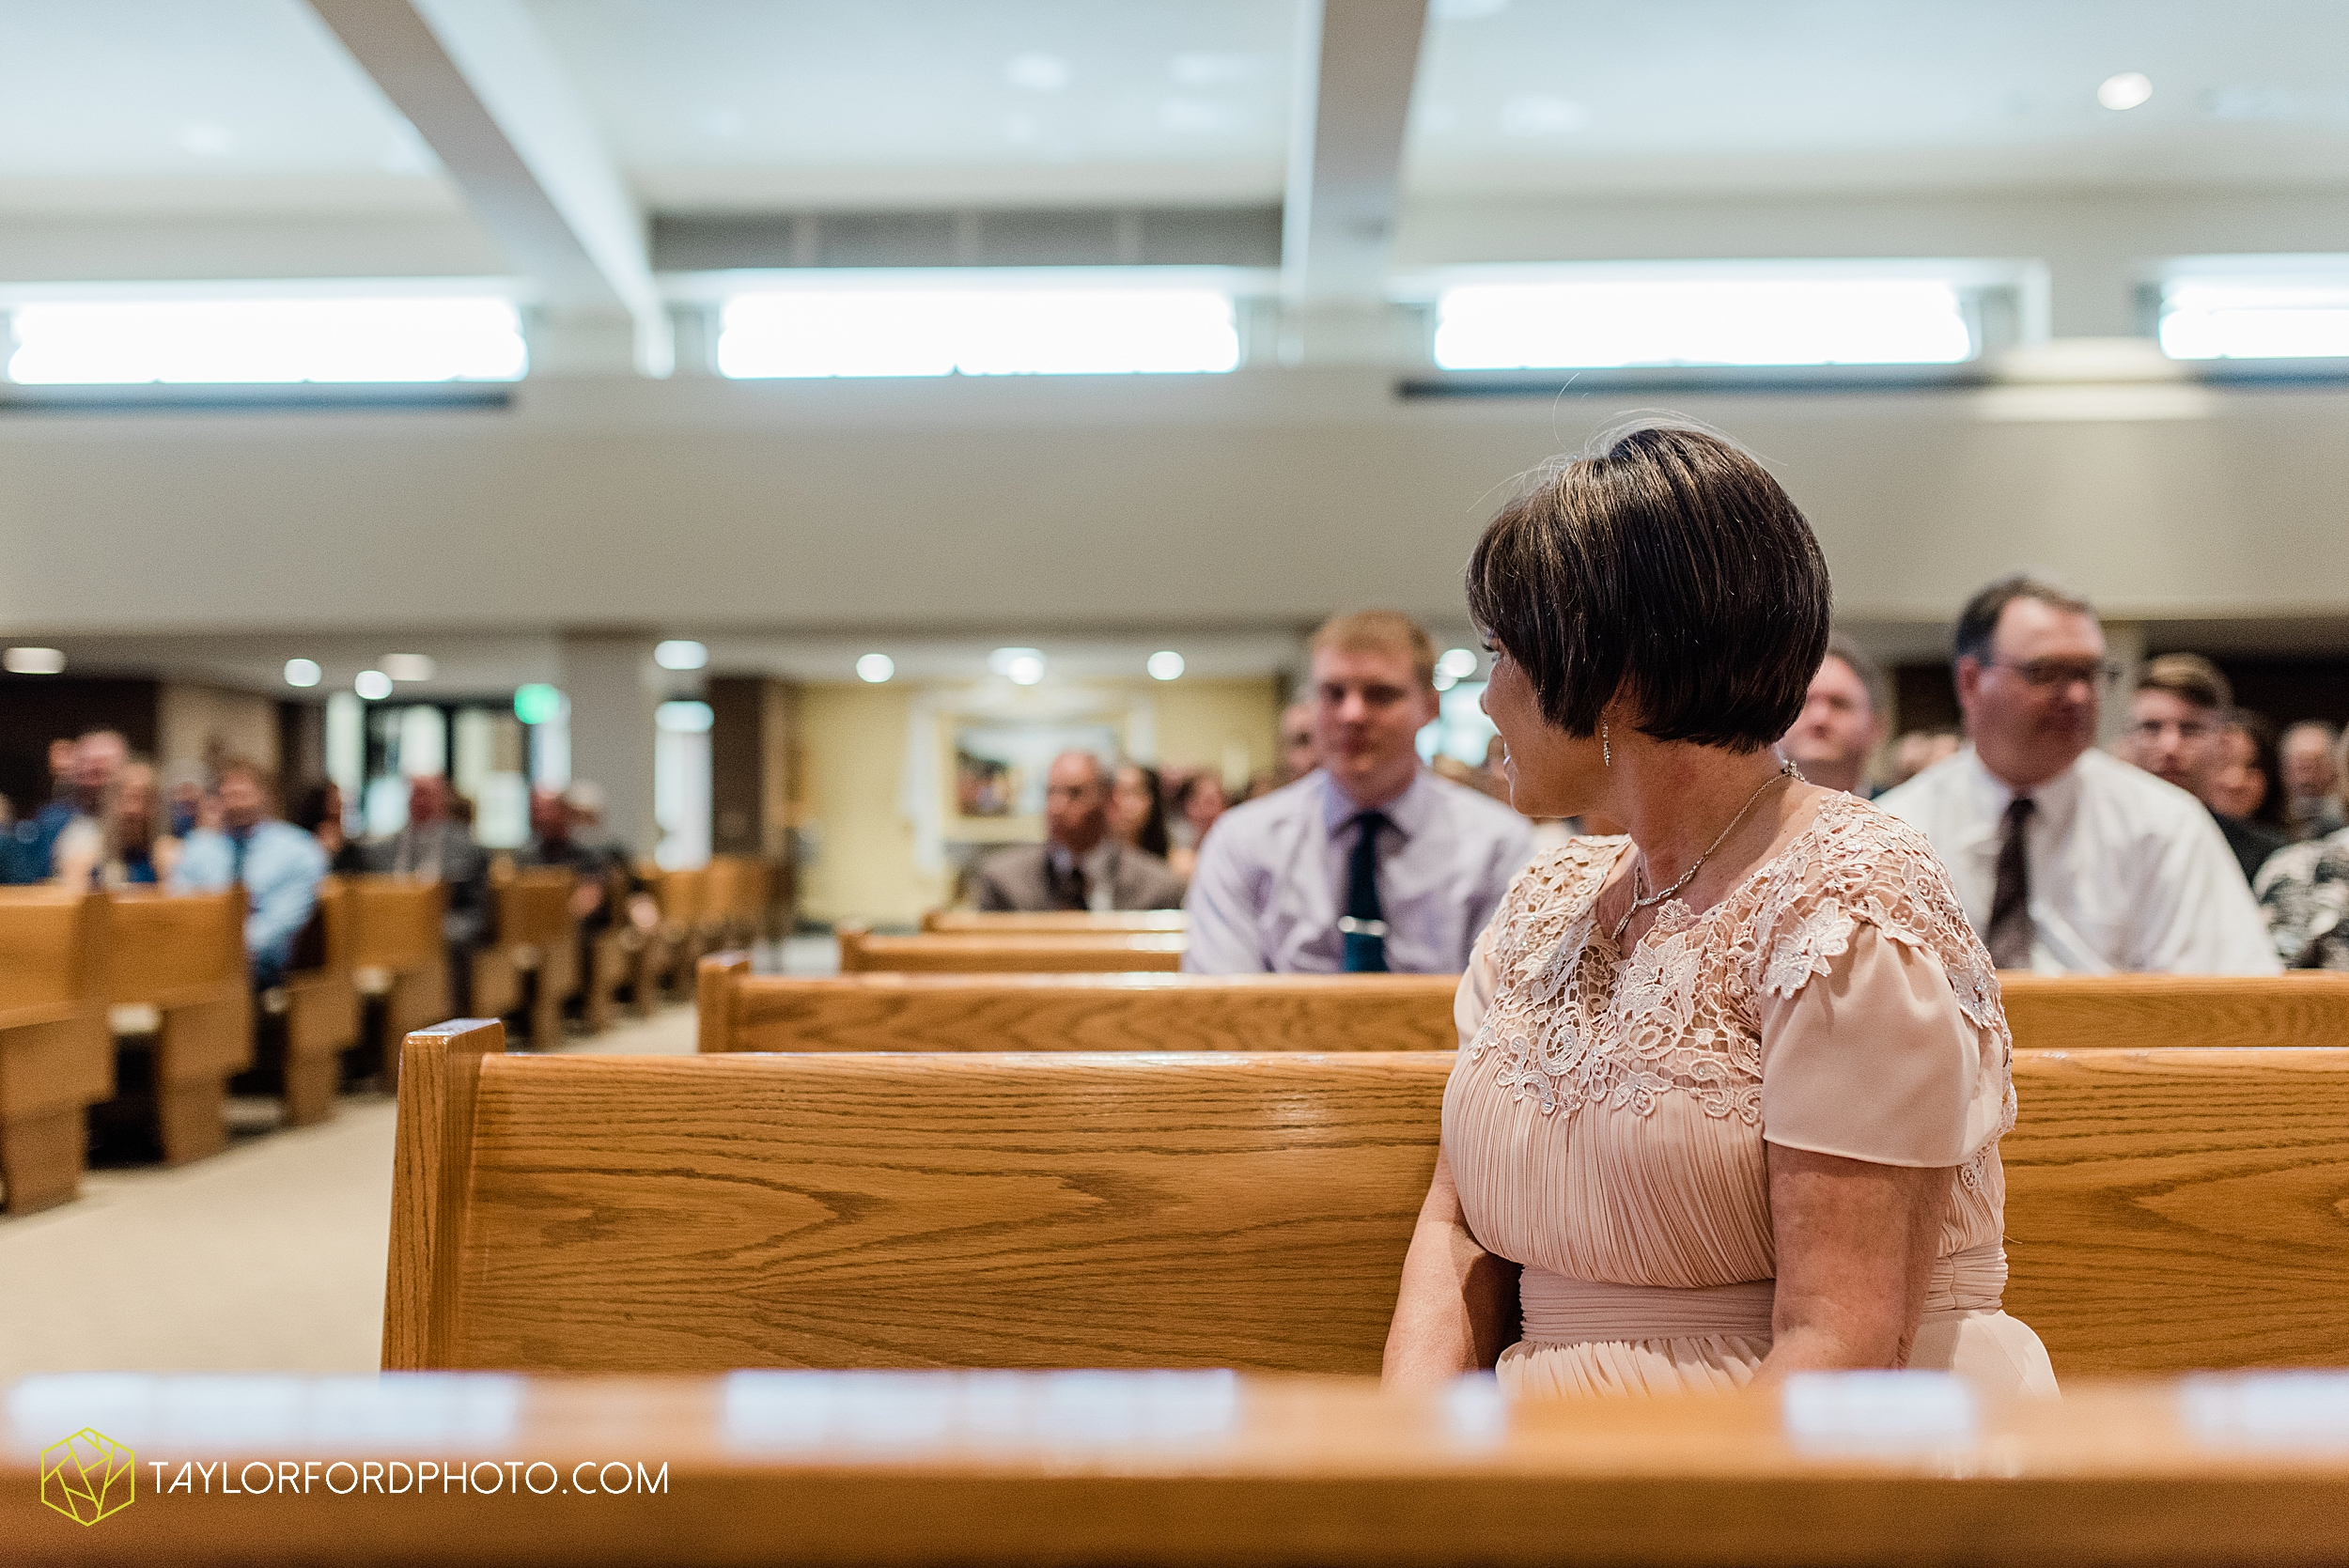 sullivan-st-francis-university-performing-arts-center-usf-saint-charles-borromeo-catholic-church-downtown-fort-wayne-indiana-wedding-photography-taylor-ford-hirschy-photographer_3223.jpg